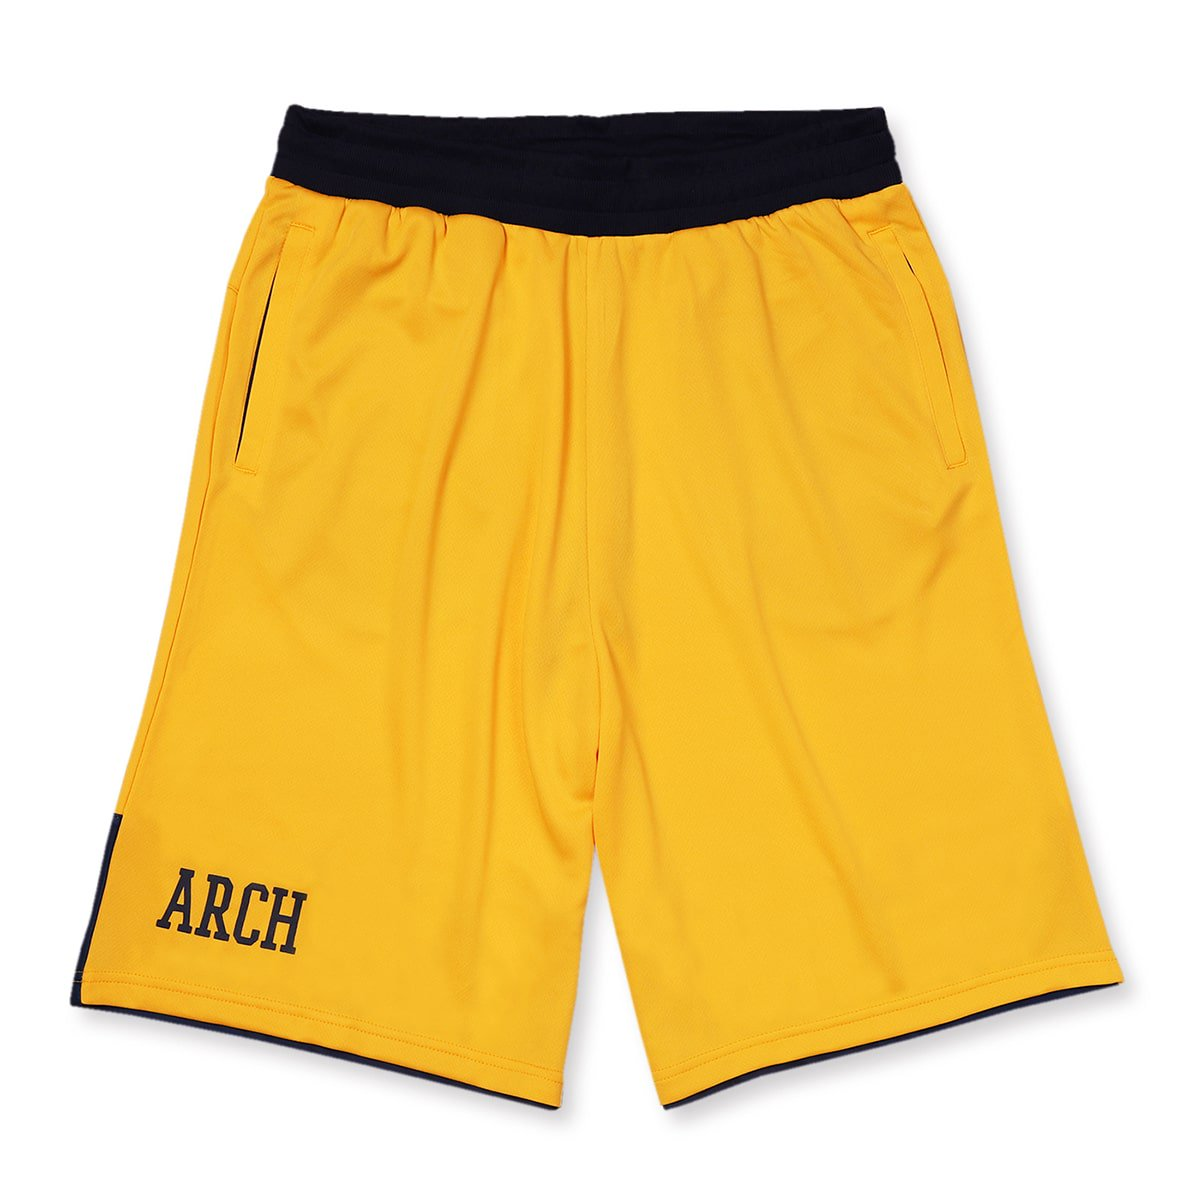 bi-color shorts【yellow/navy】